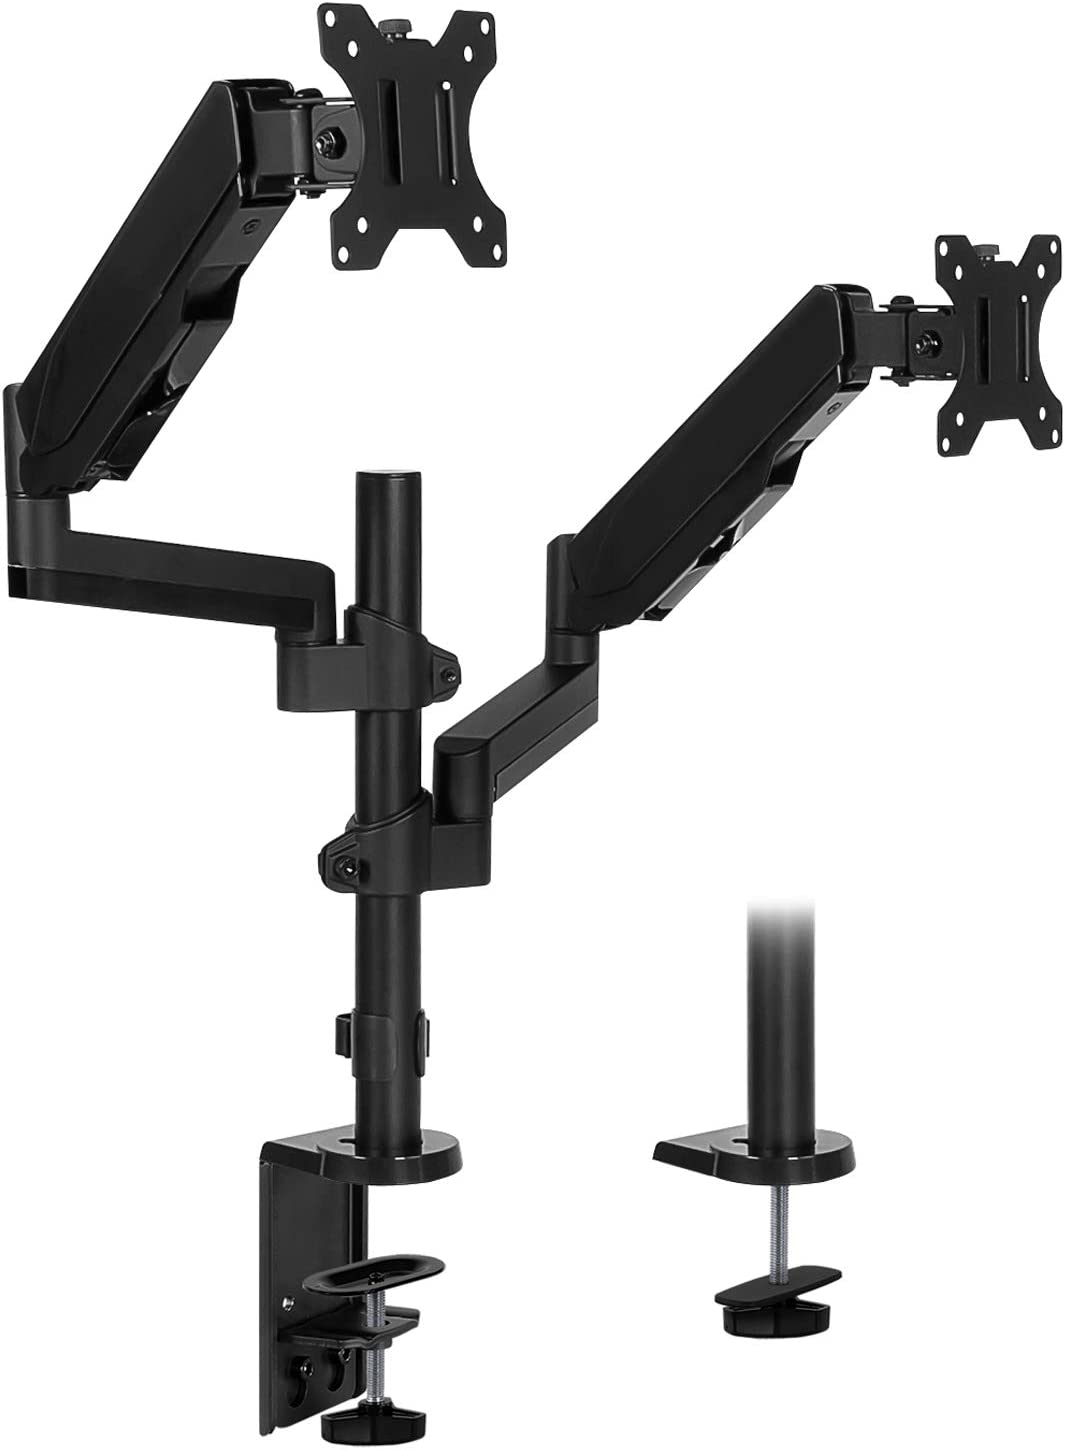 Mount-It! Dual Monitor Arm Mount Desk Stand